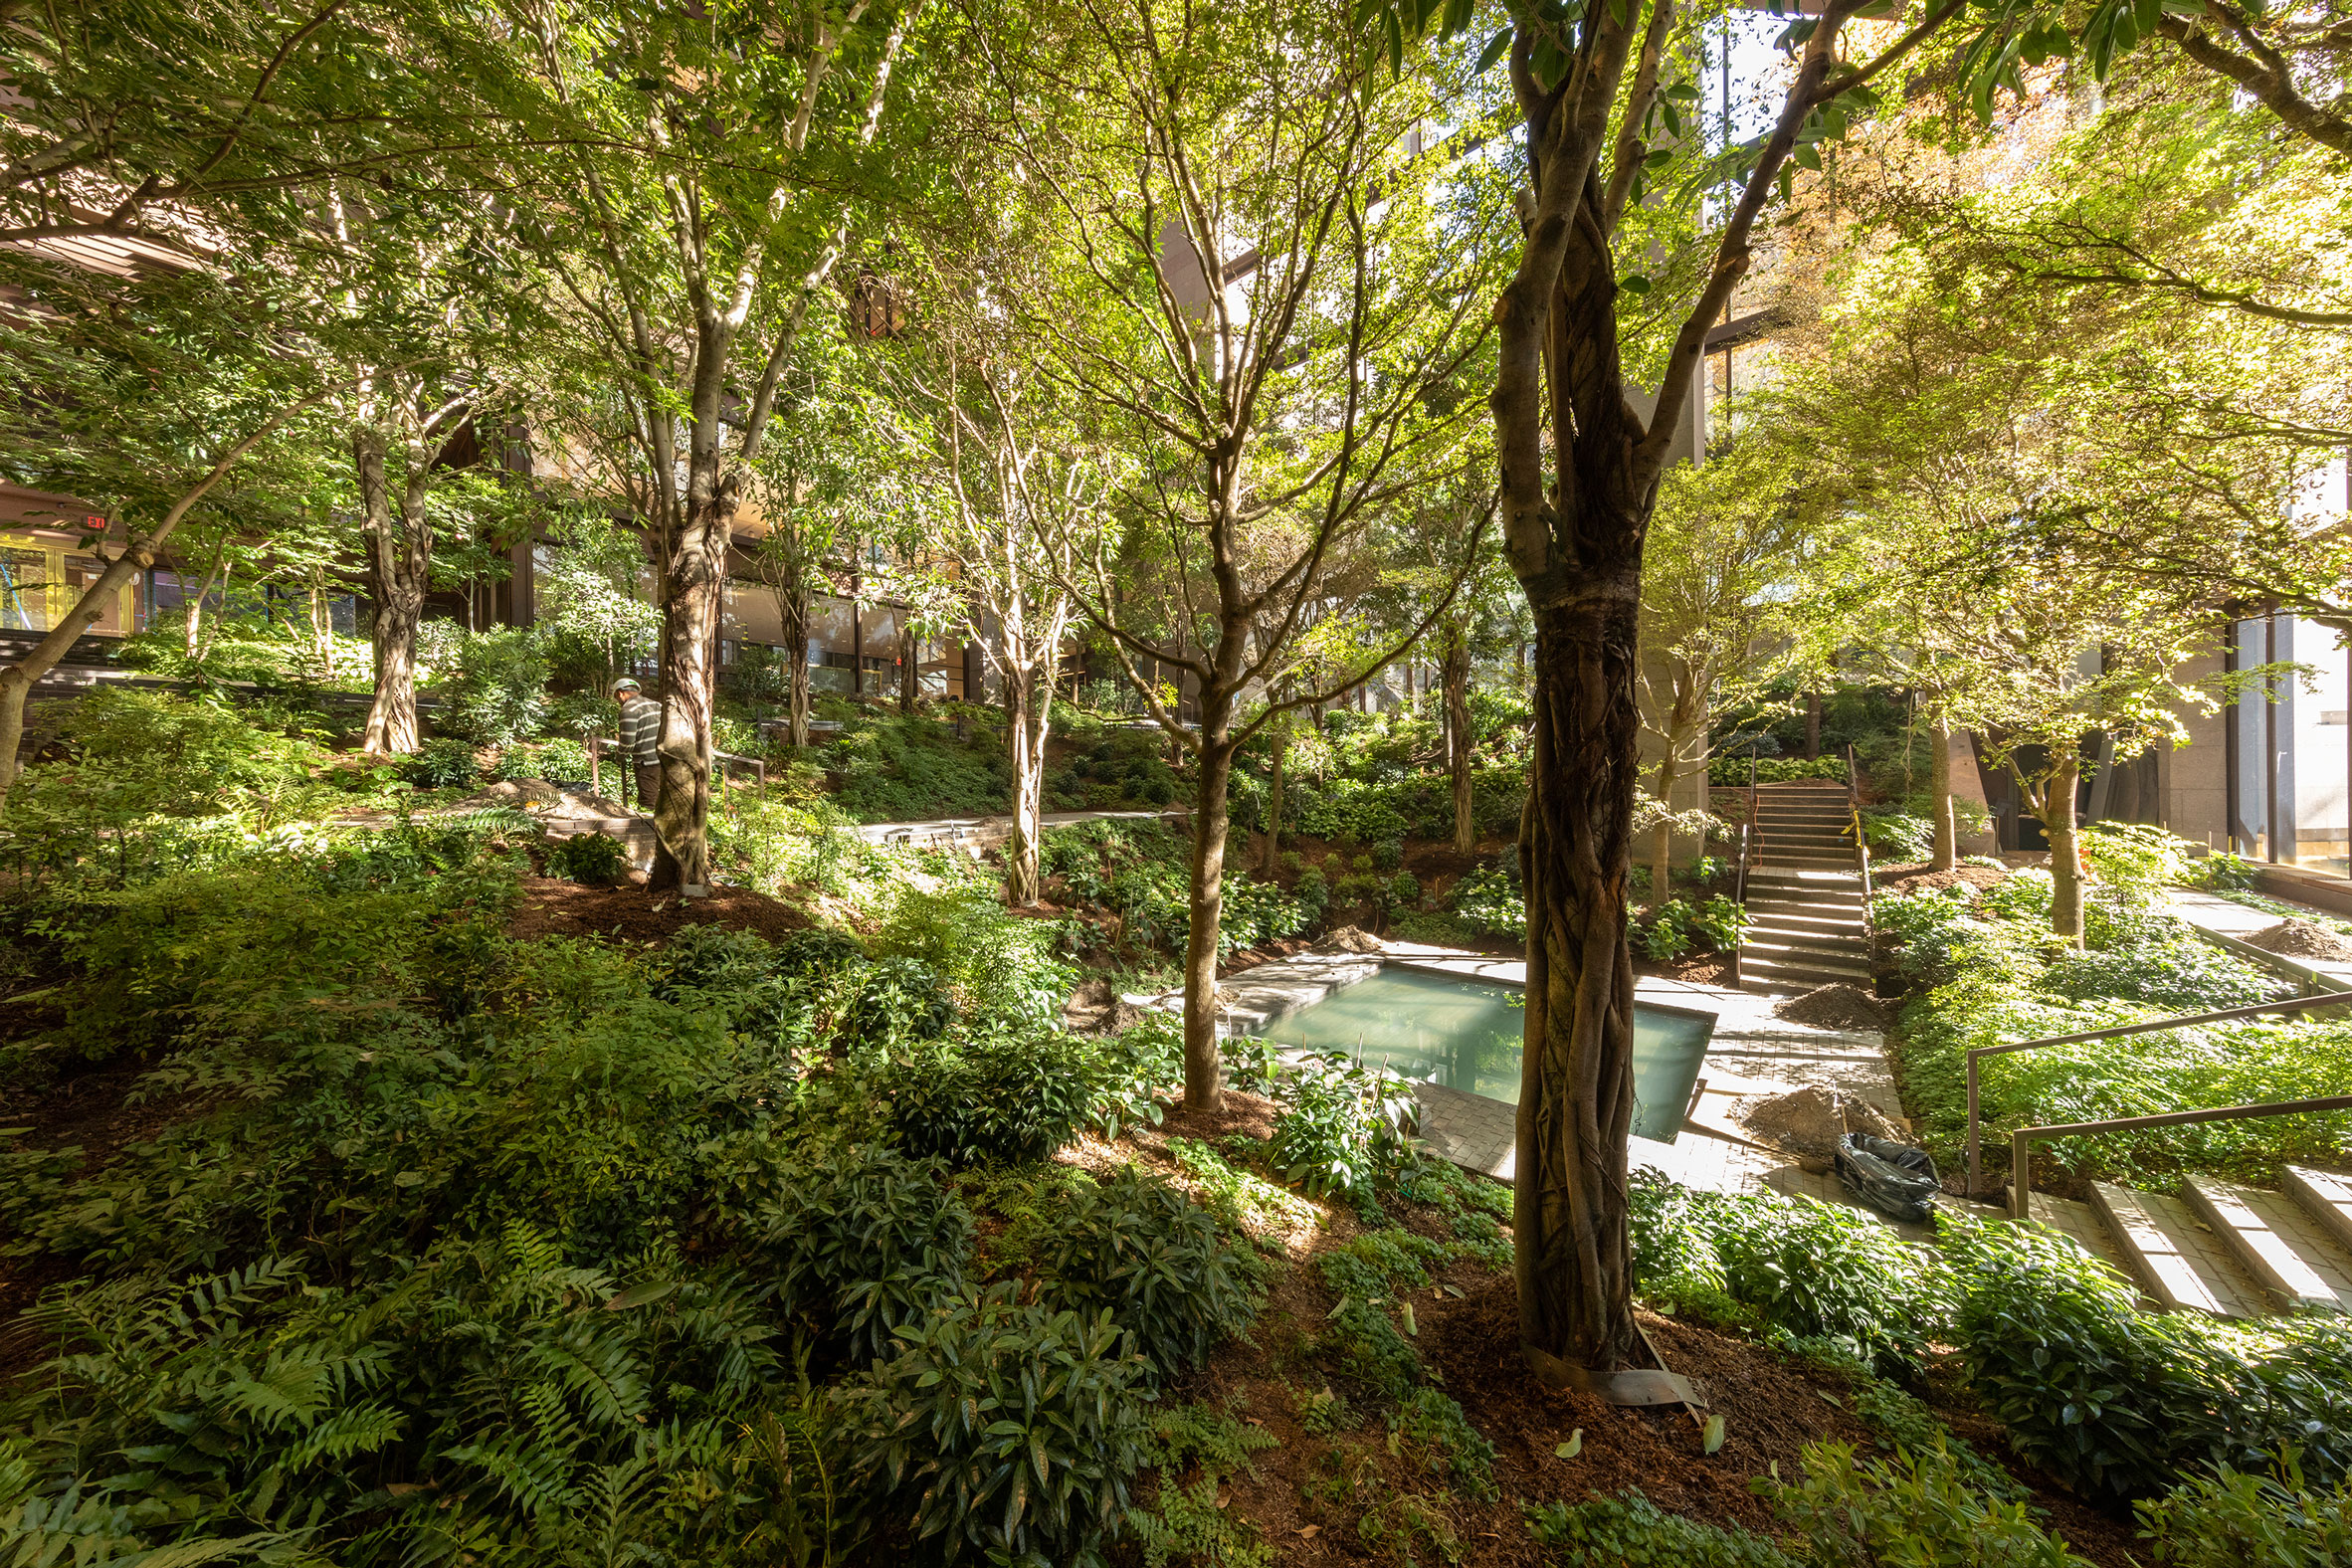 Landscape architecture in the Ford Foundation Atrium, New York City